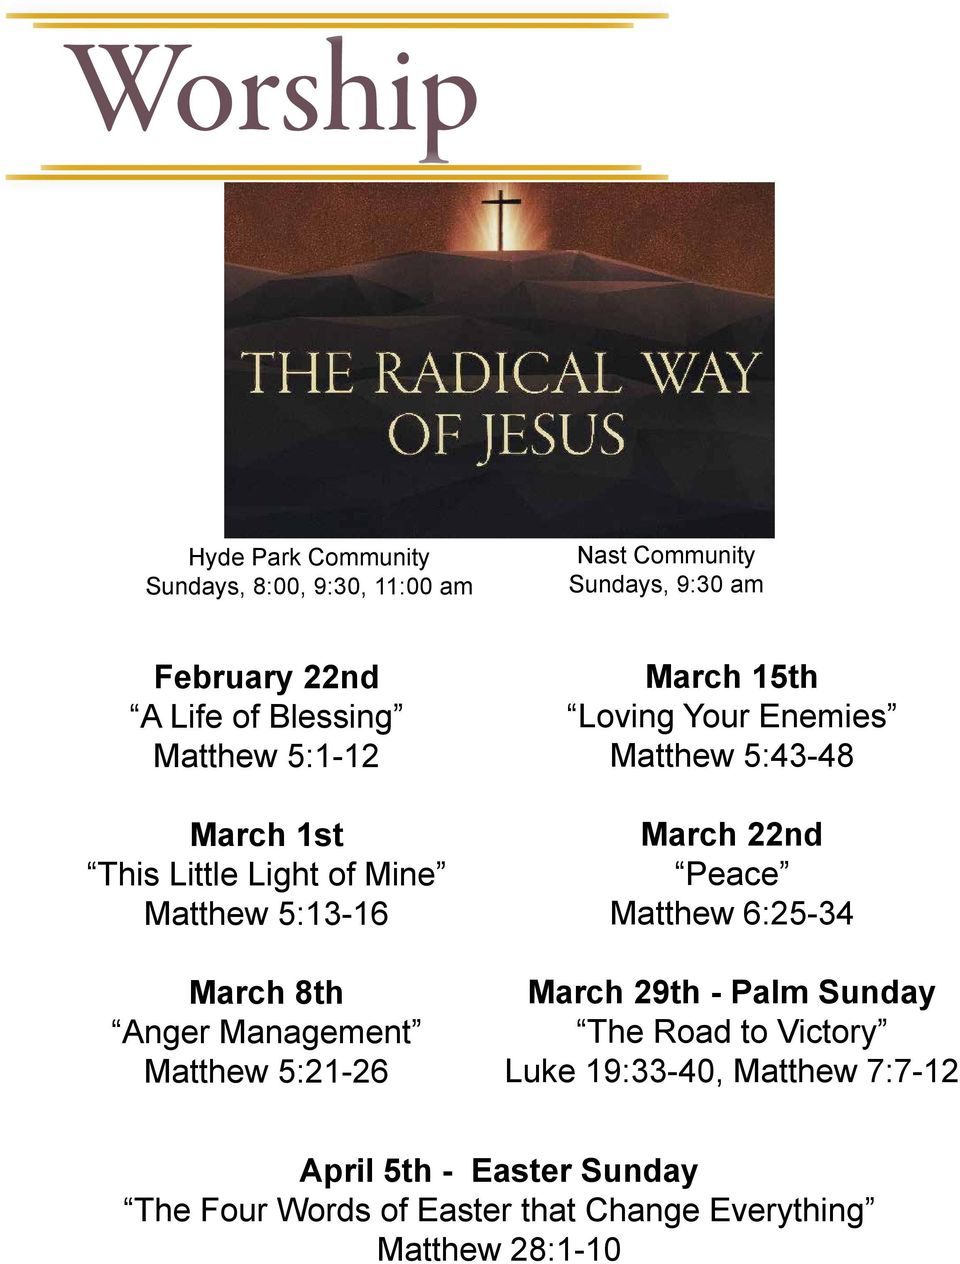 March 15th Loving Your Enemies Matthew 5:43-48 March 22nd Peace Matthew 6:25-34 March 29th - Palm Sunday The Road to